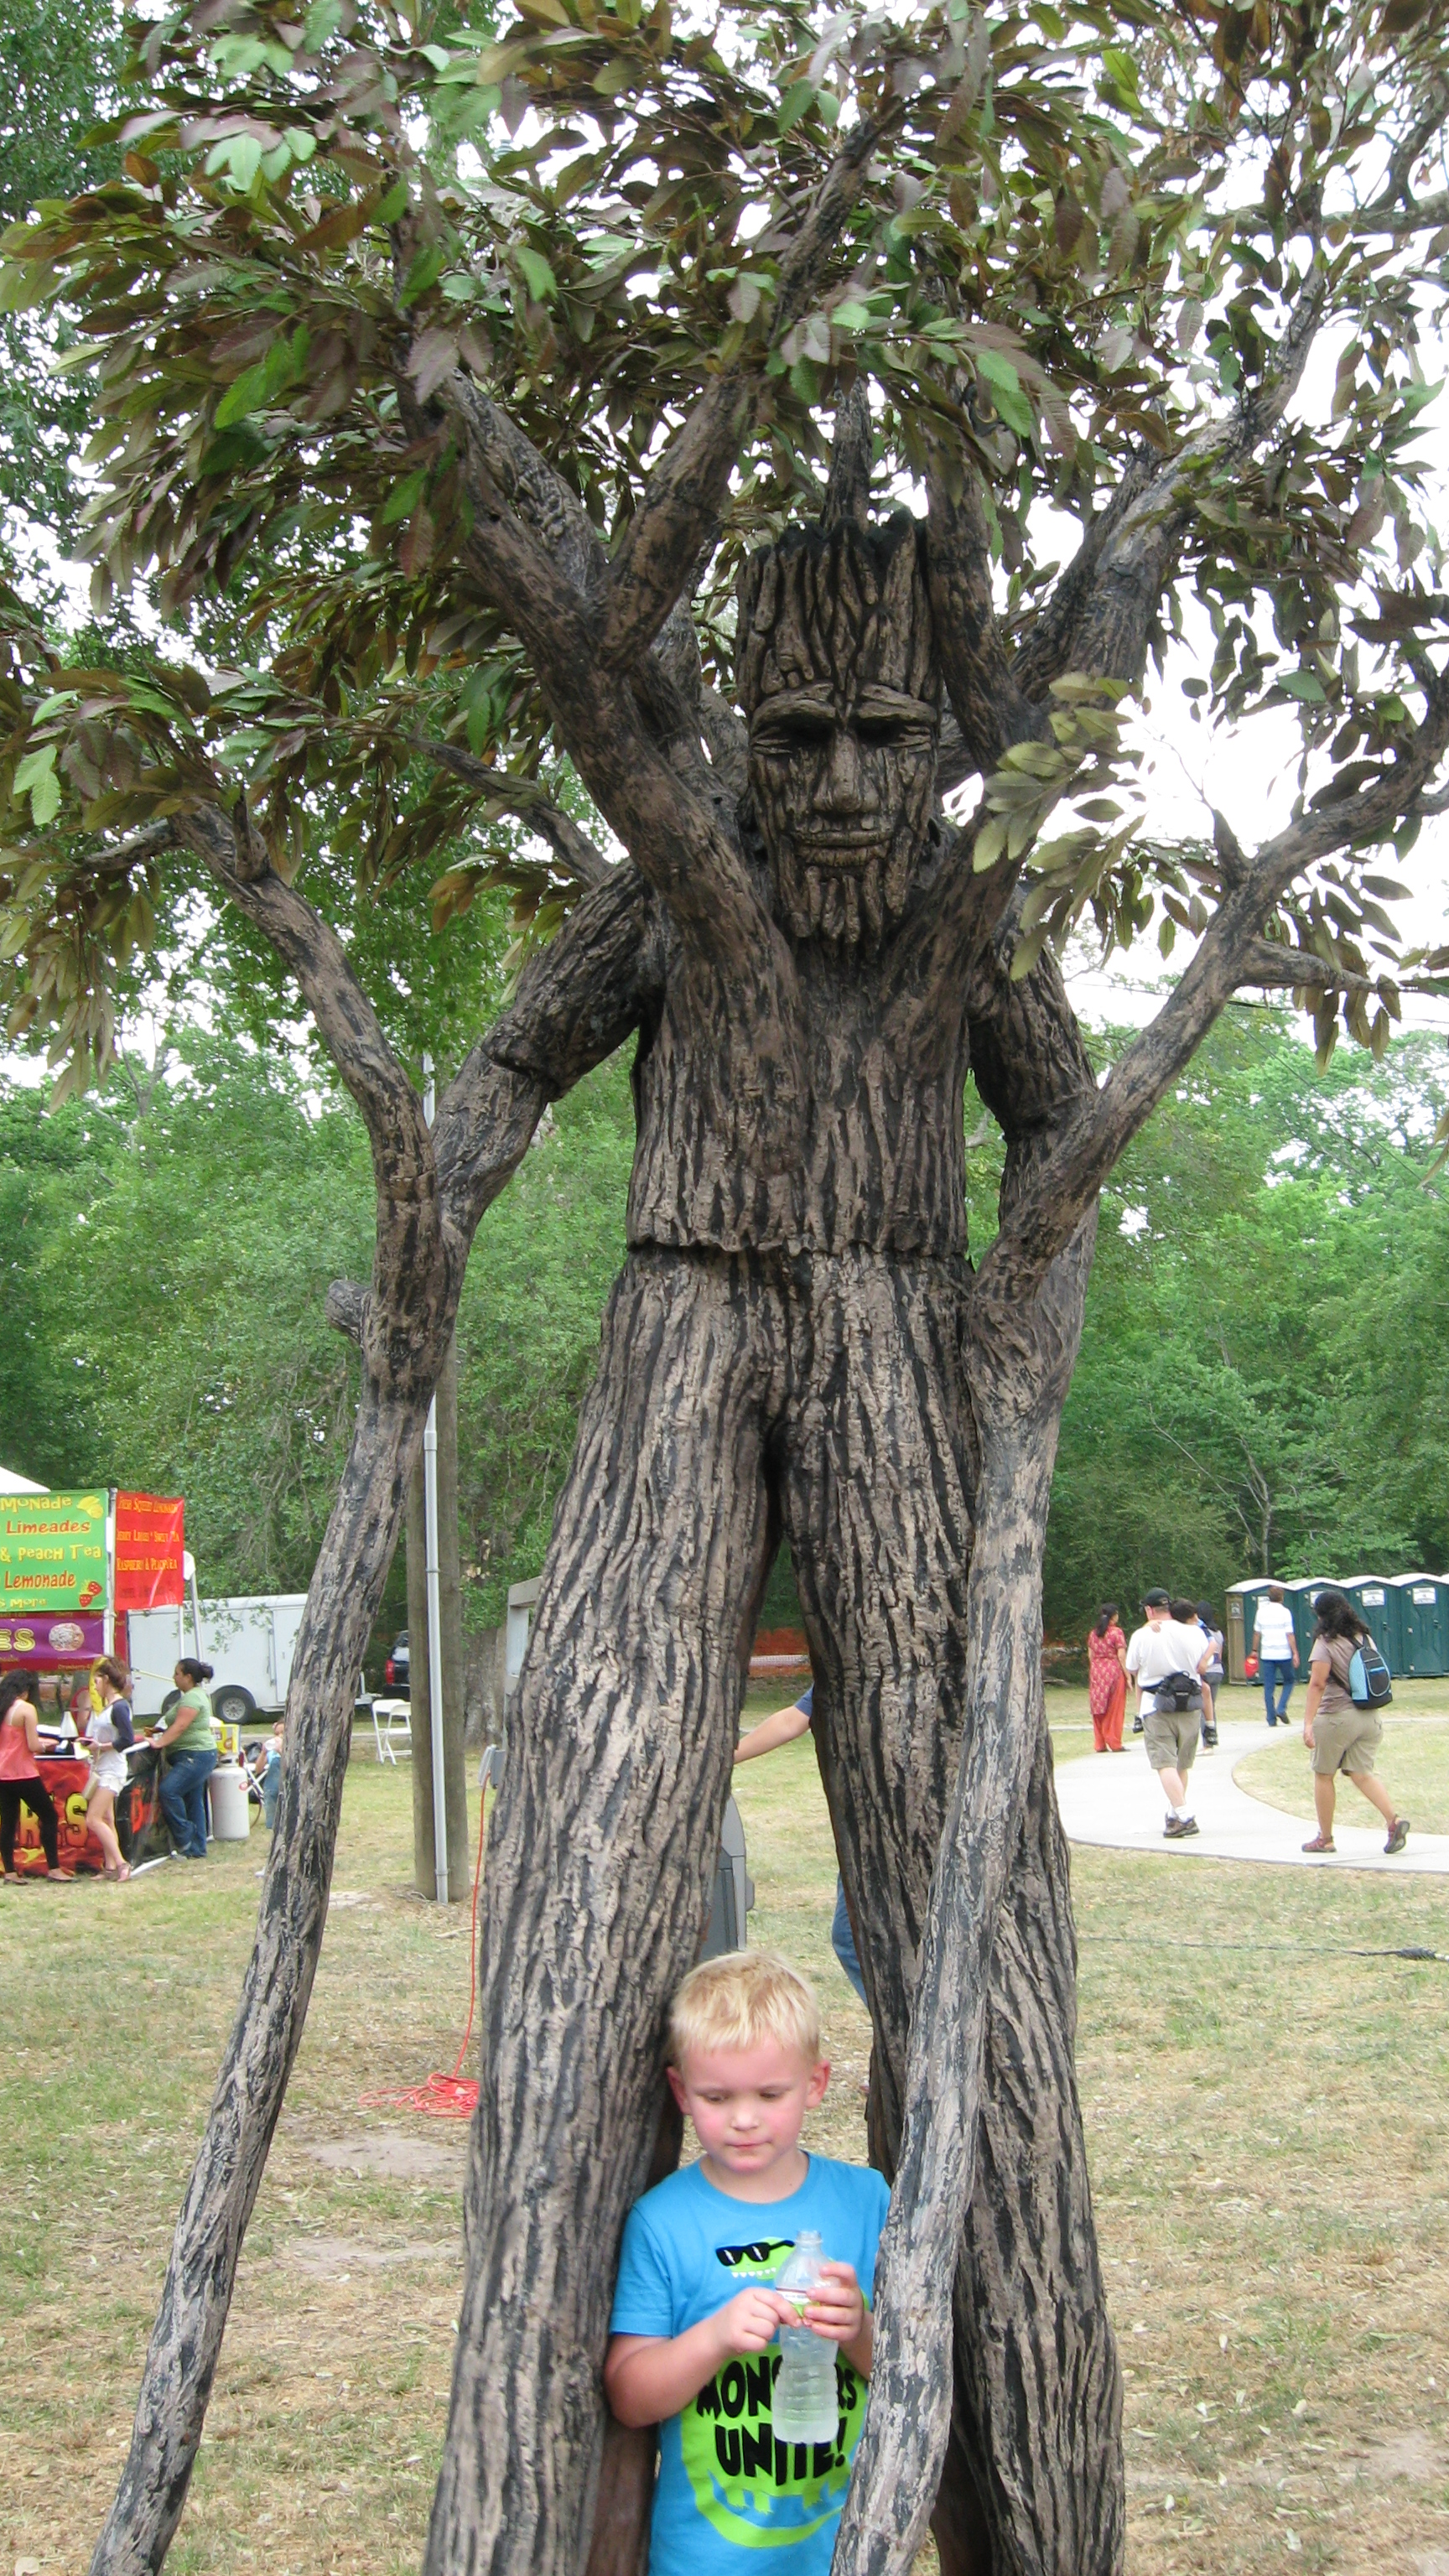 Not that adult tree costume with stilts for